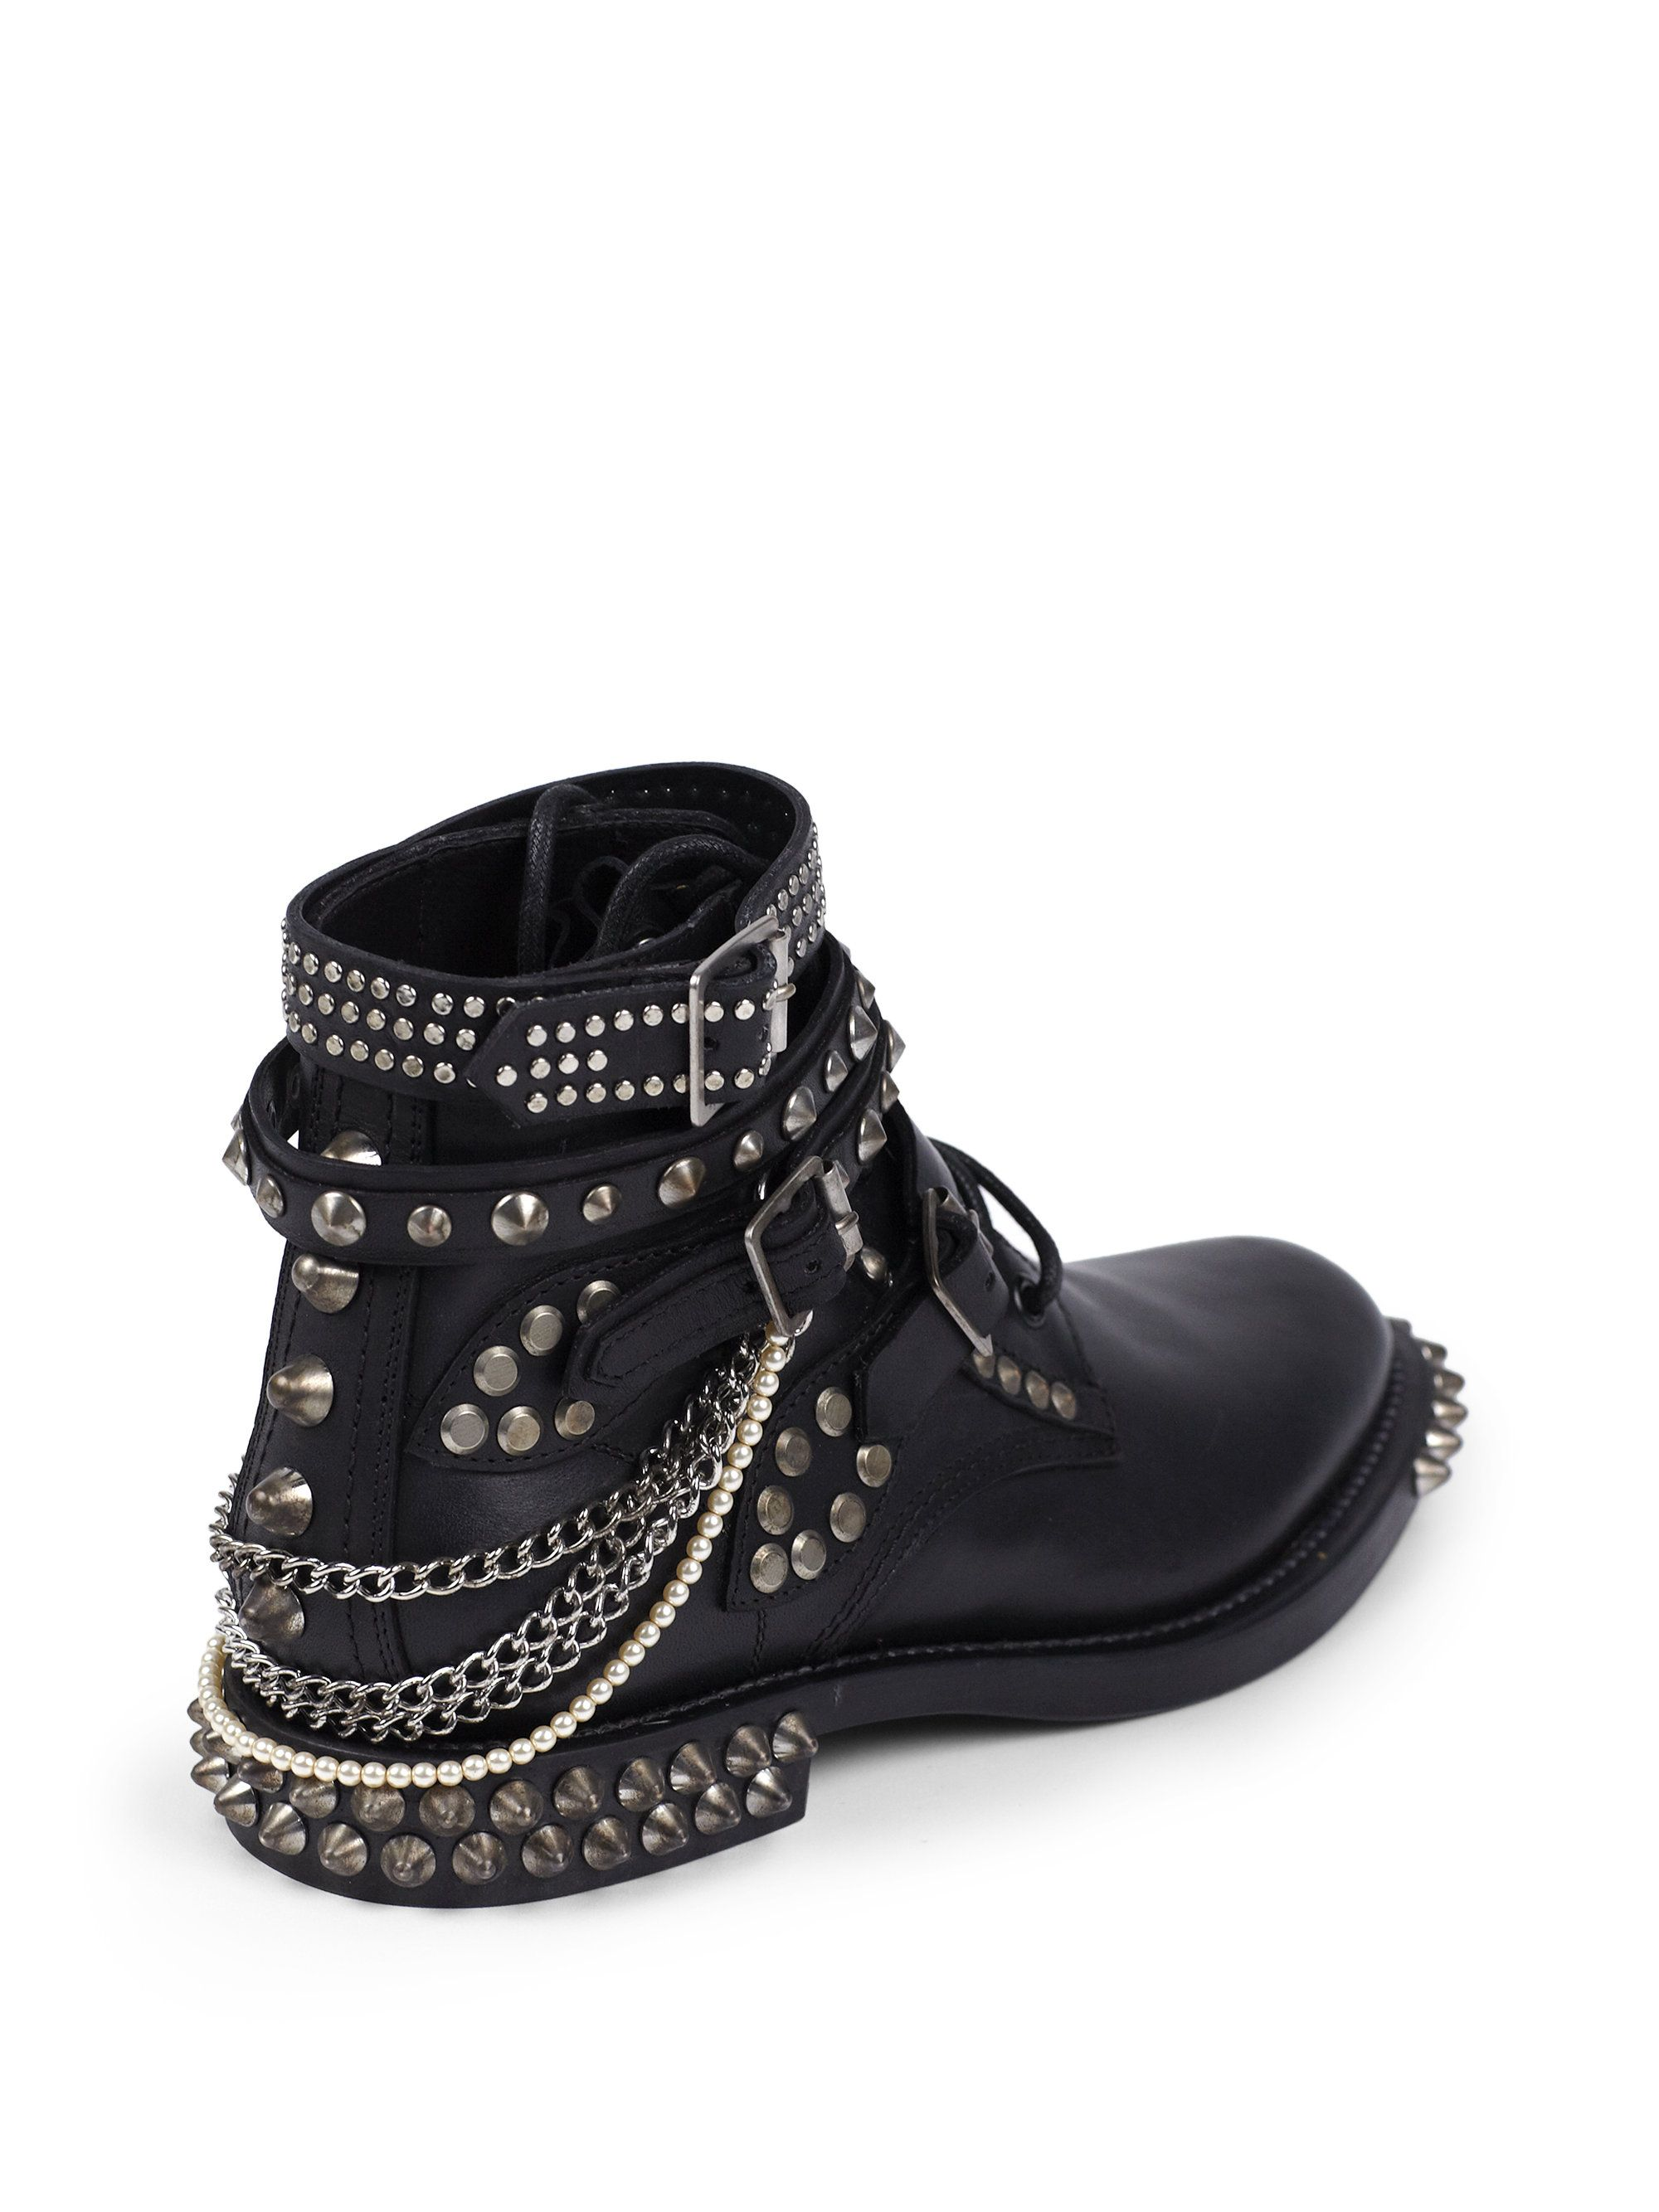 12c511c08af yves saint laurant bags - Saint laurent Rangers Embellished Leather Lace-up  Ankle Boots in .